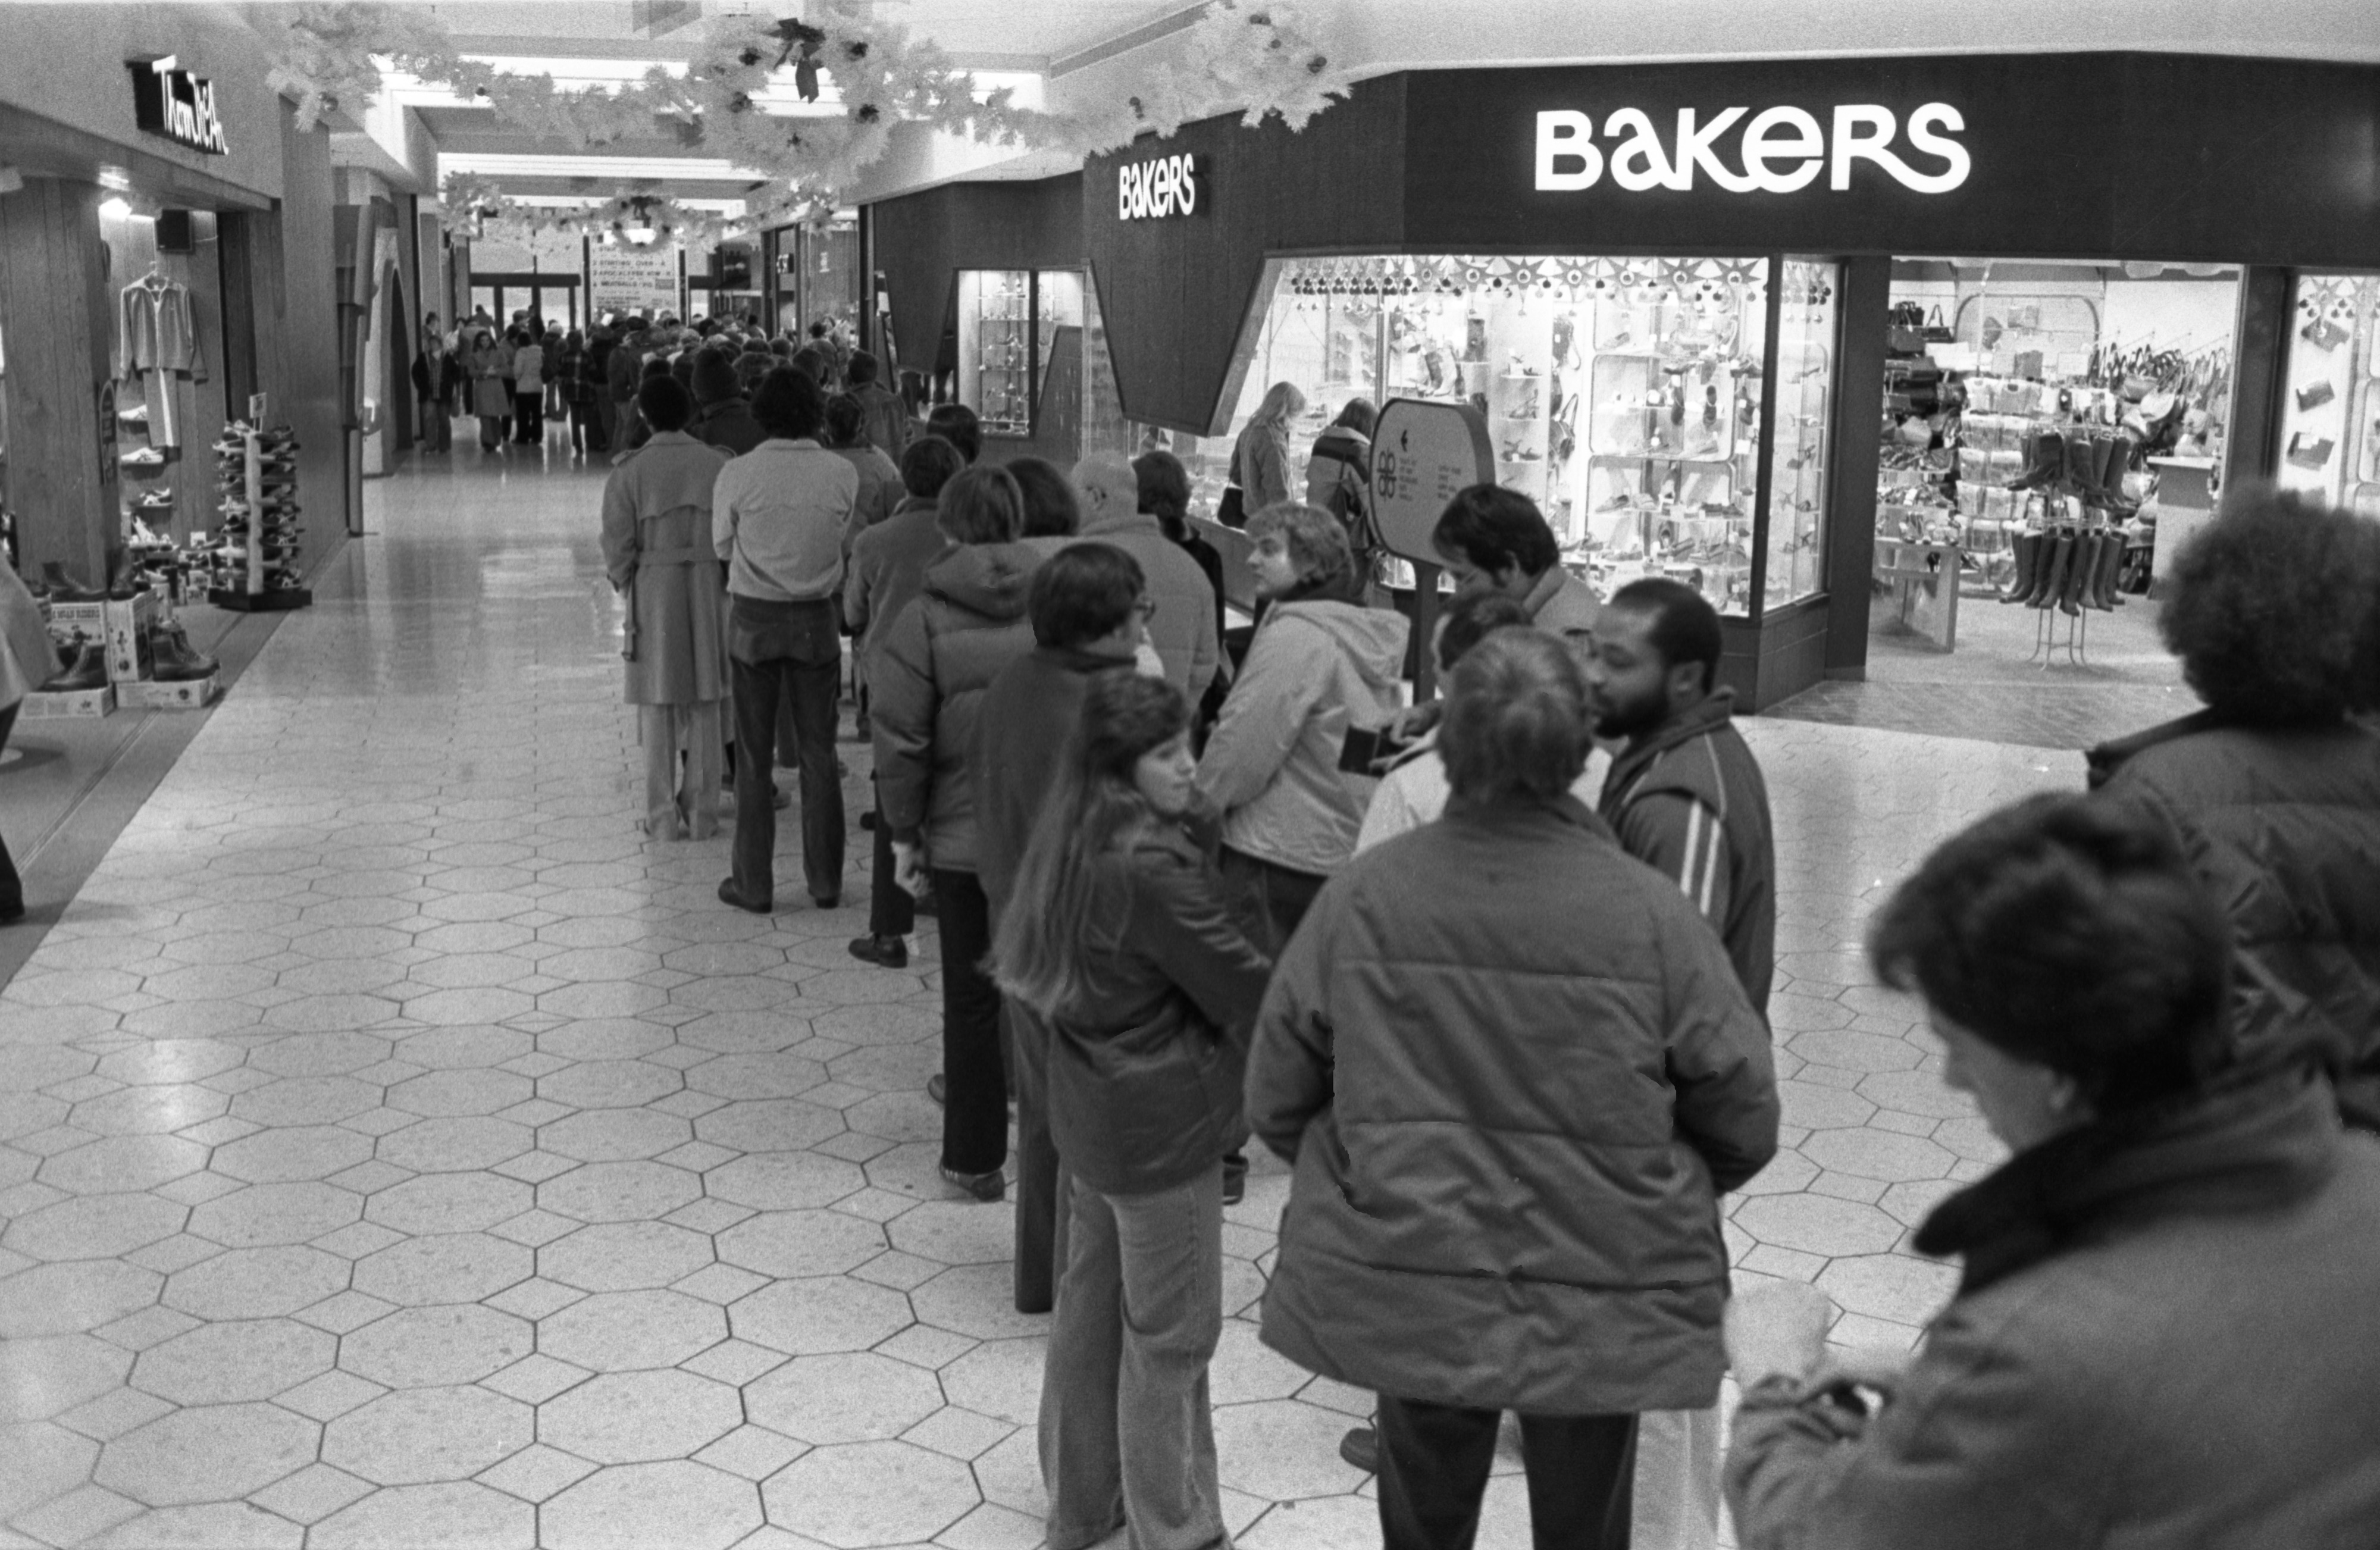 Fans Wait In Line At Briarwood For Opening Day Of Star Trek The Motion Picture, December 7, 1979 image